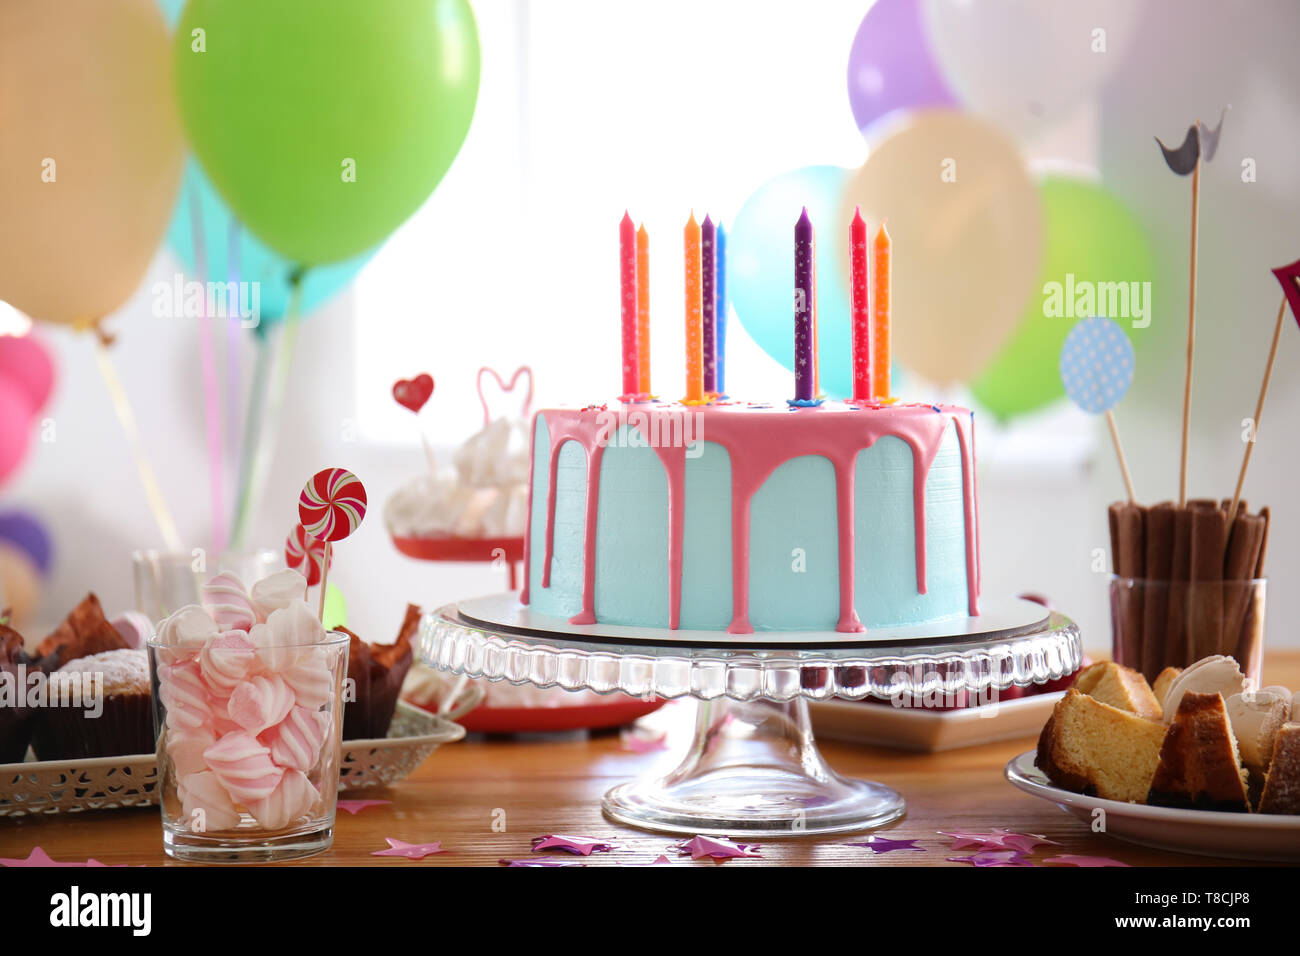 Marvelous Beautiful Birthday Cake With Candles And Different Sweets On Table Personalised Birthday Cards Cominlily Jamesorg